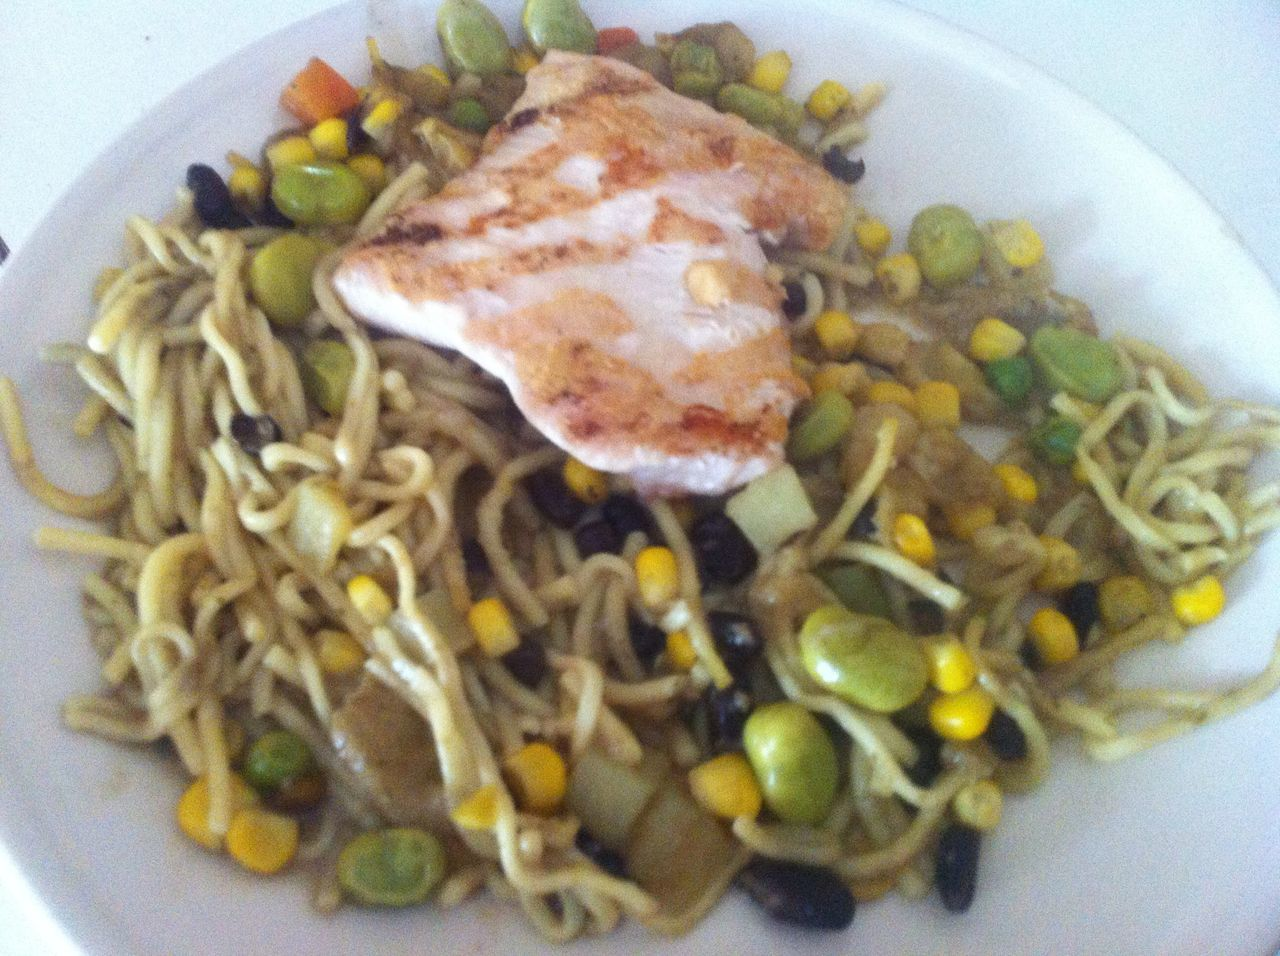 Dinner Corn Broadbeans Noodles Pasta Chicken Steak Blackbeans Blessed